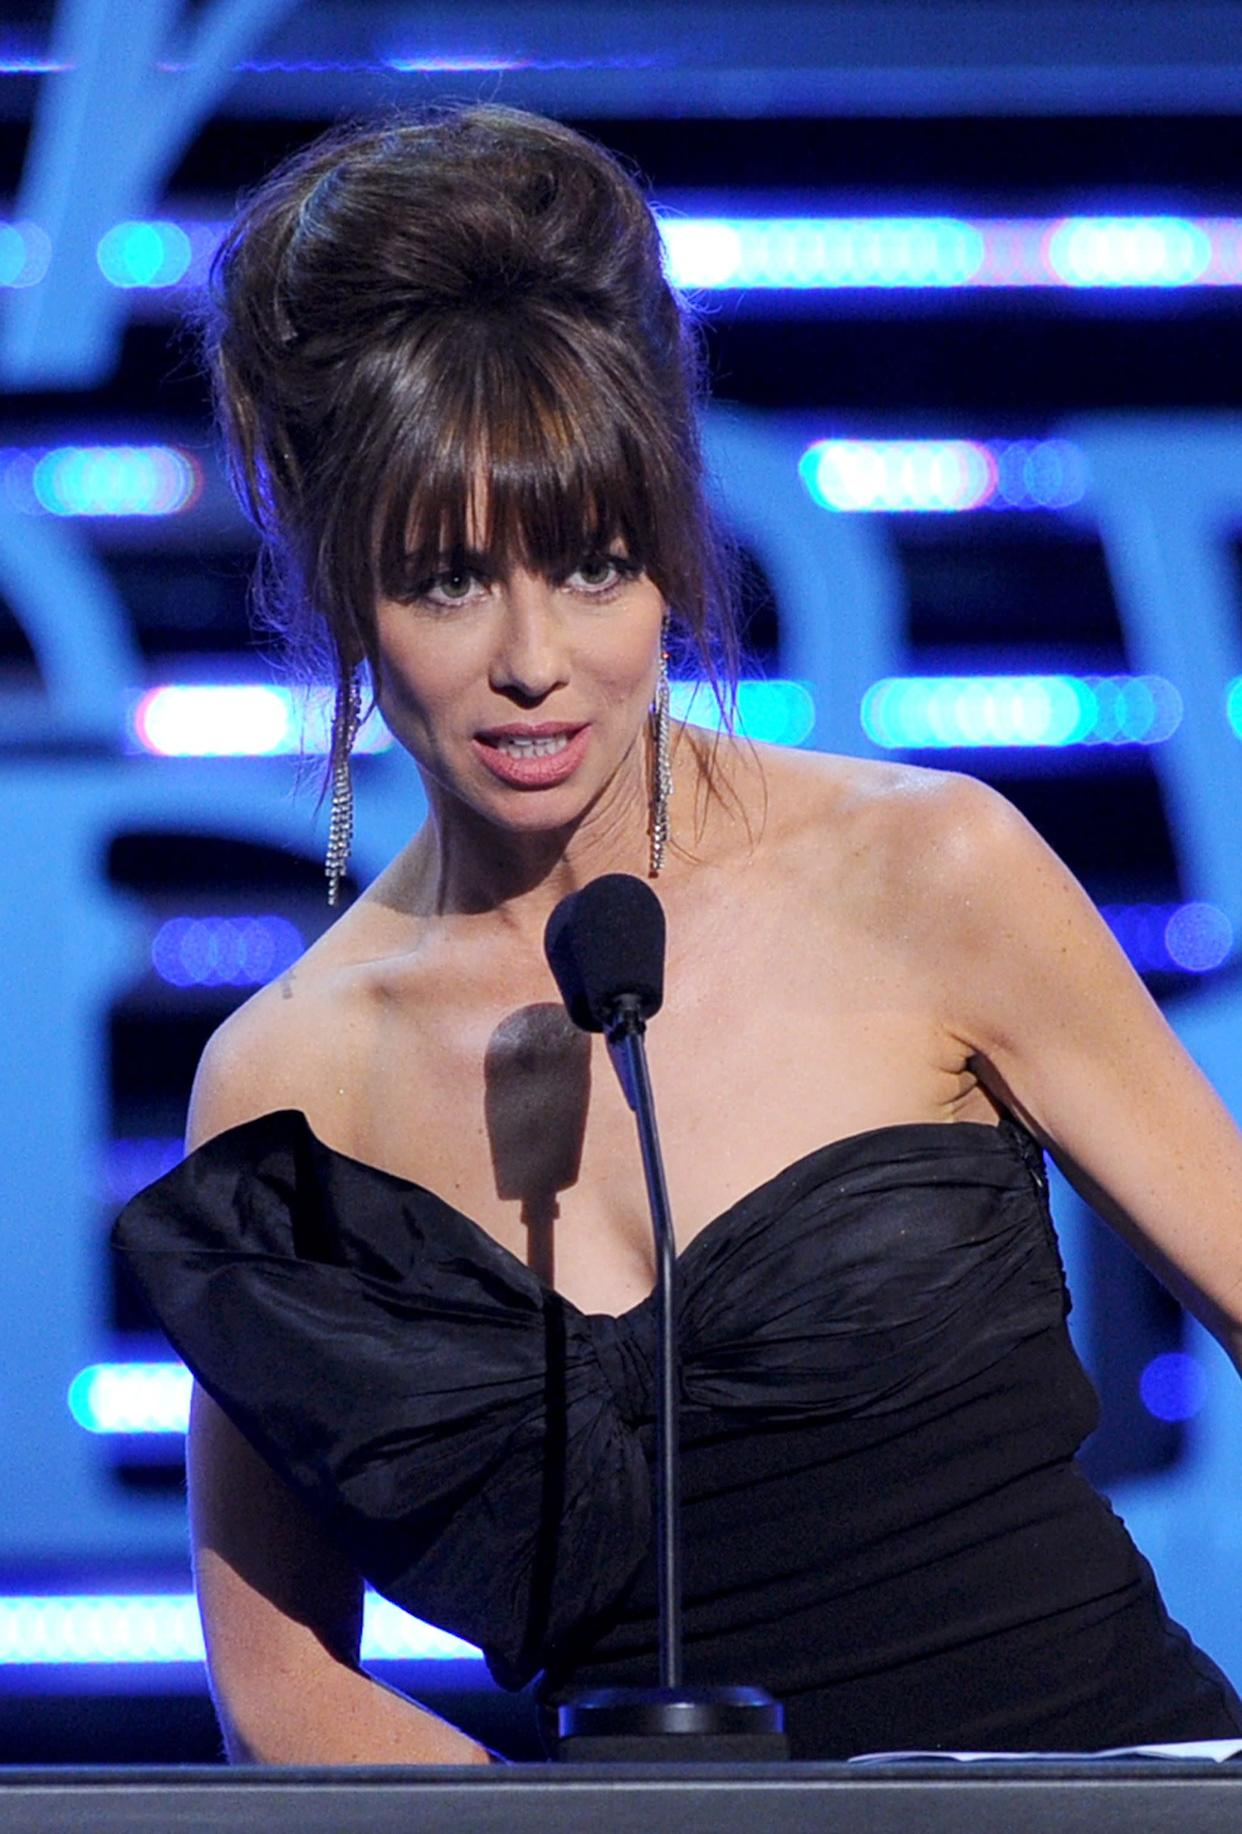 CULVER CITY, CA - AUGUST 25: Actress Natasha Leggero speaks onstage during The Comedy Central Roast of James Franco at Culver Studios on August 25, 2013 in Culver City, California. The Comedy Central Roast Of James Franco will air on September 2 at 10:00 p.m. ET/PT. (Photo by Kevin Winter/Getty Images for Comedy Central)